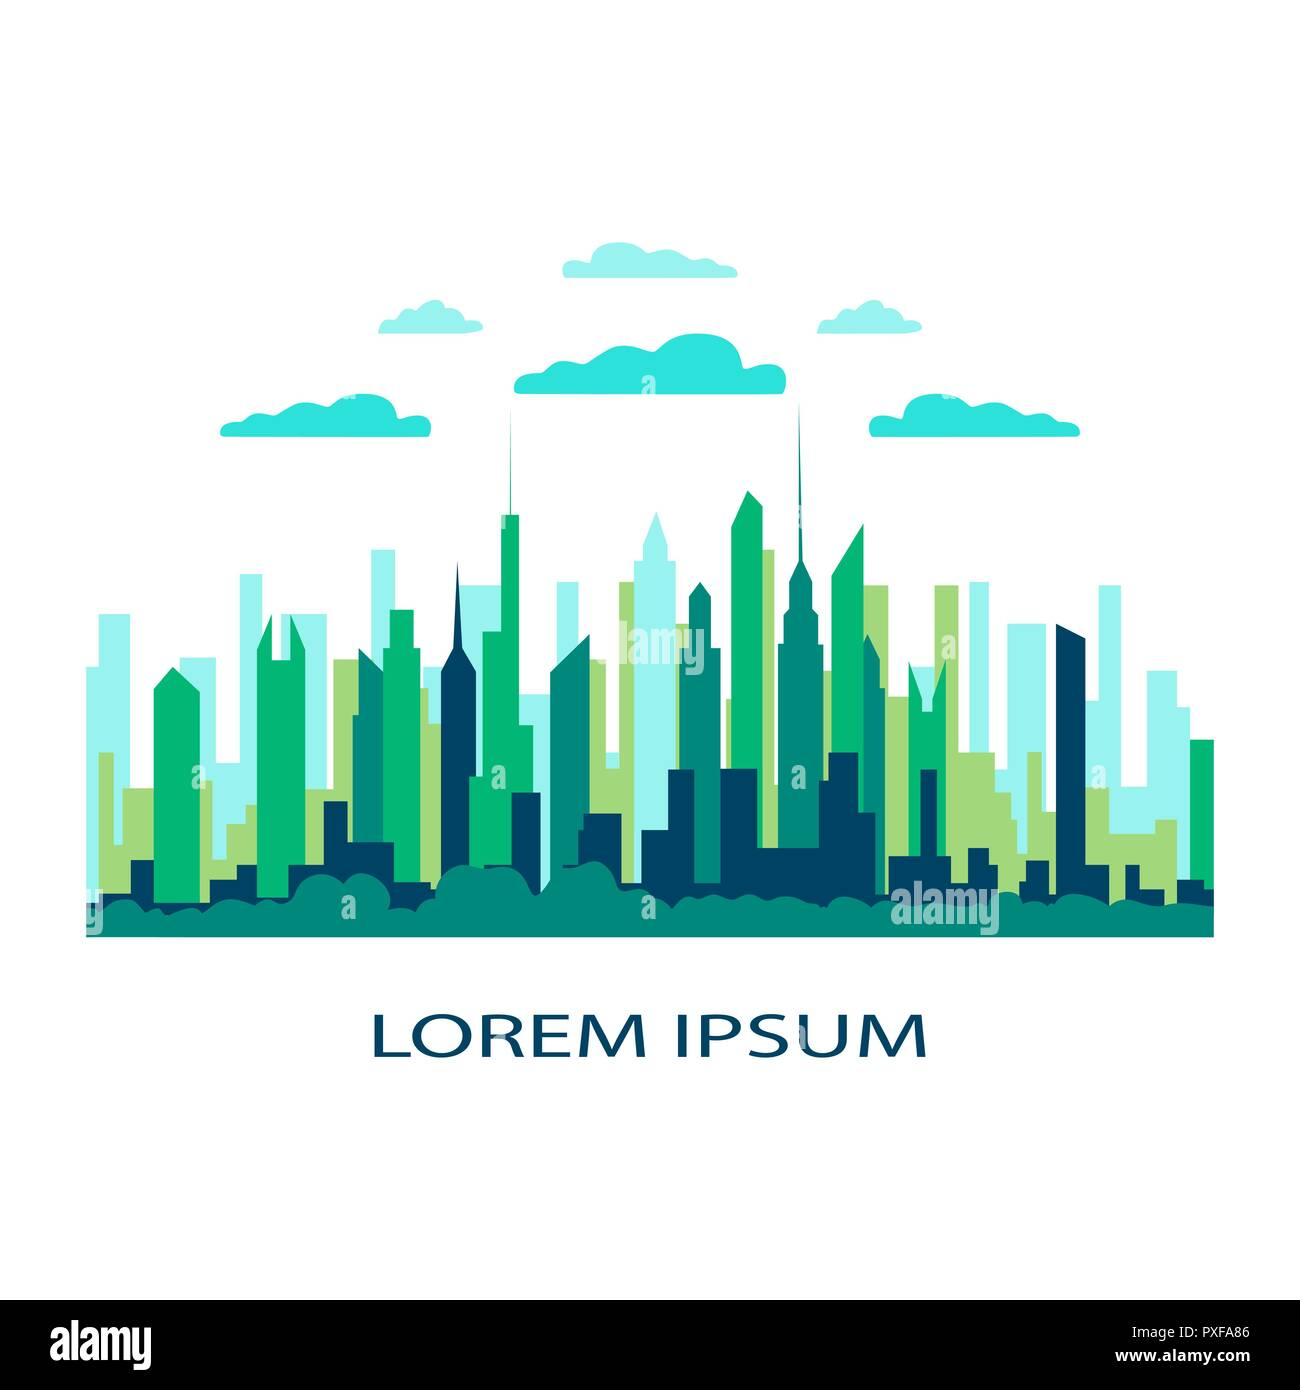 City landscape flat. Design urban illustration vector in simple minimal geometric  style with buildings, lake flowers and trees abstract background fo - Stock Image